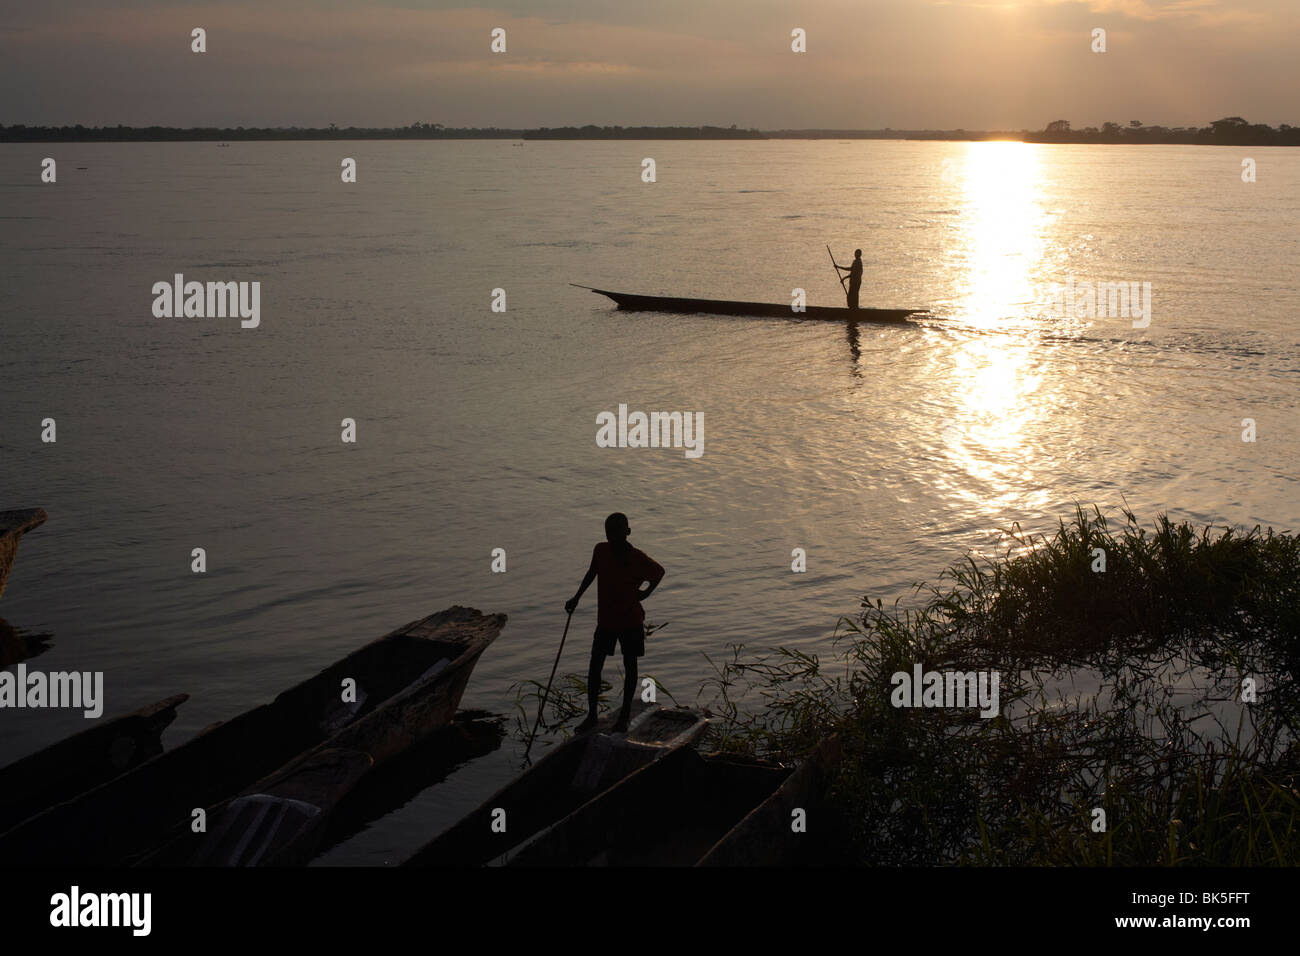 The Congo river at Yangambi, Democratic Republic of Congo, Africa - Stock Image